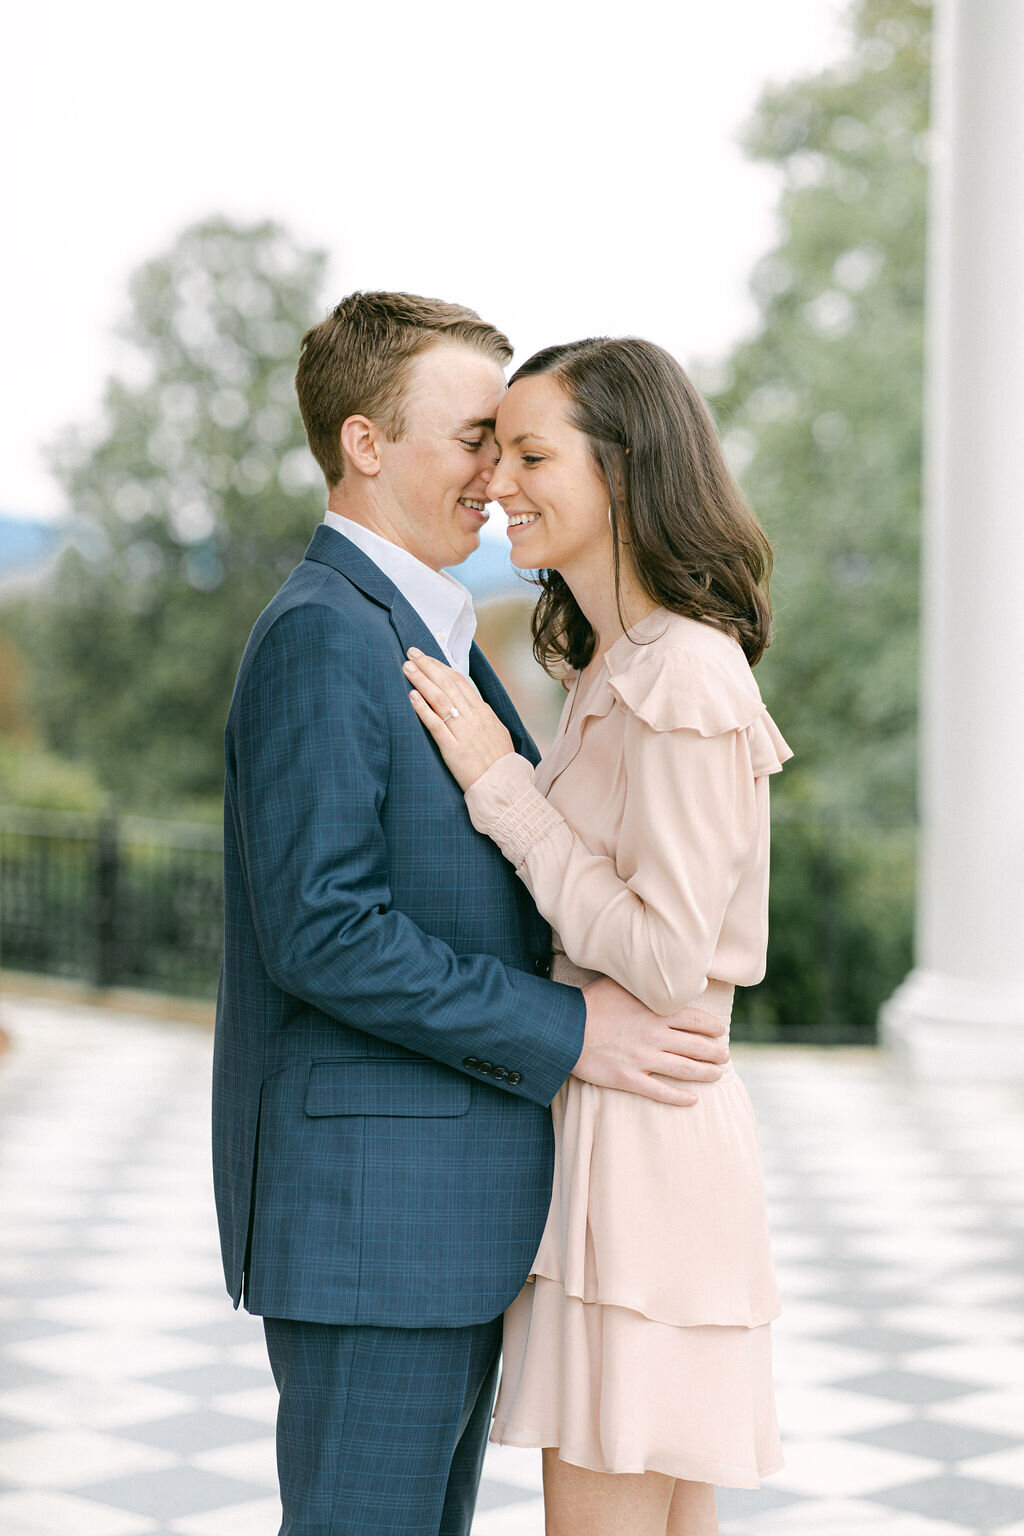 audra-jones-photography-natalie-lewis-farmington-charlottesville-engagement-edit-7